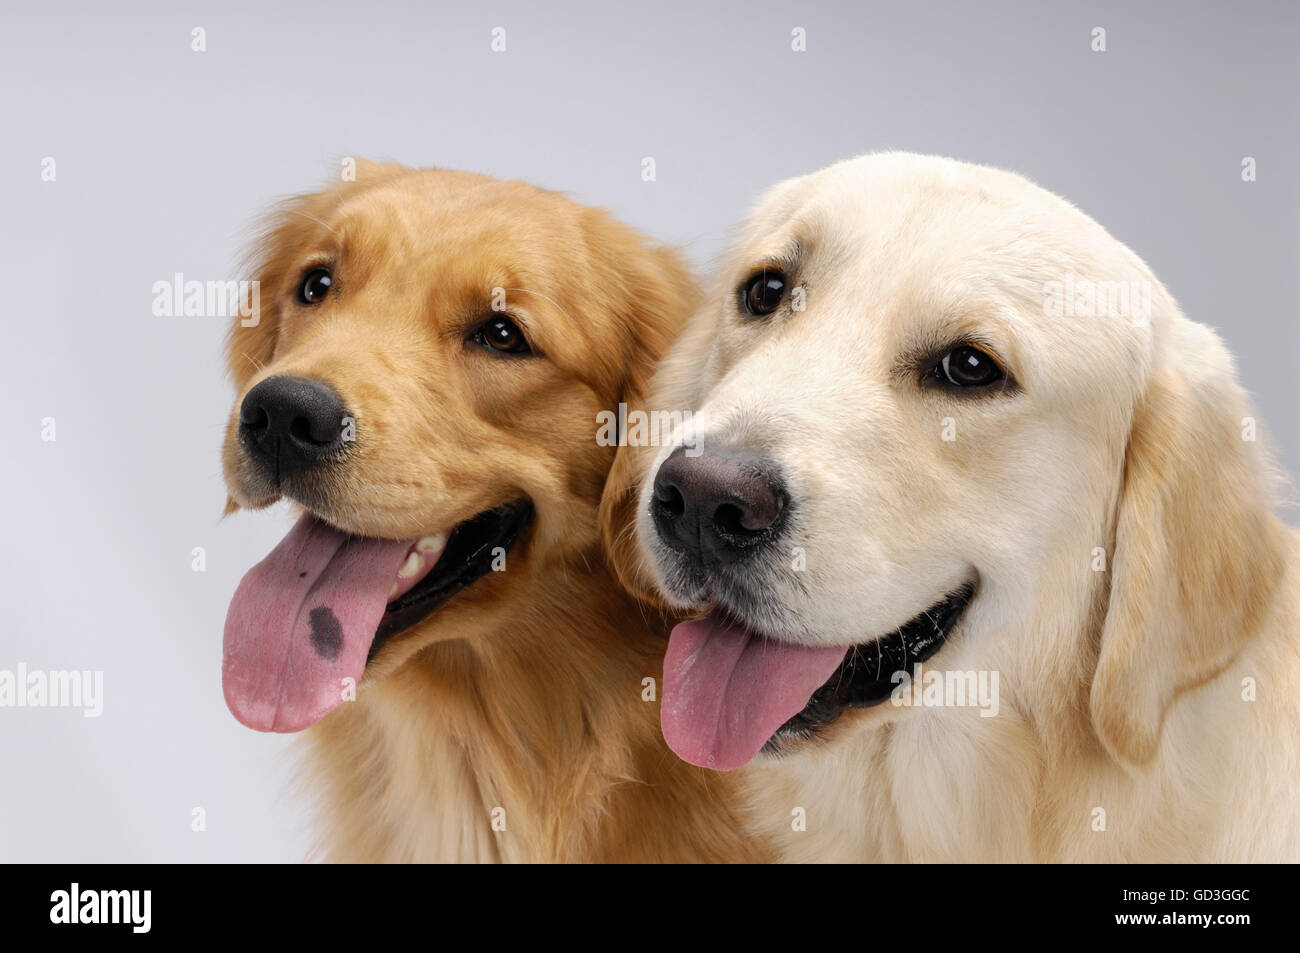 Two one year old Golden Retrievers - Stock Image